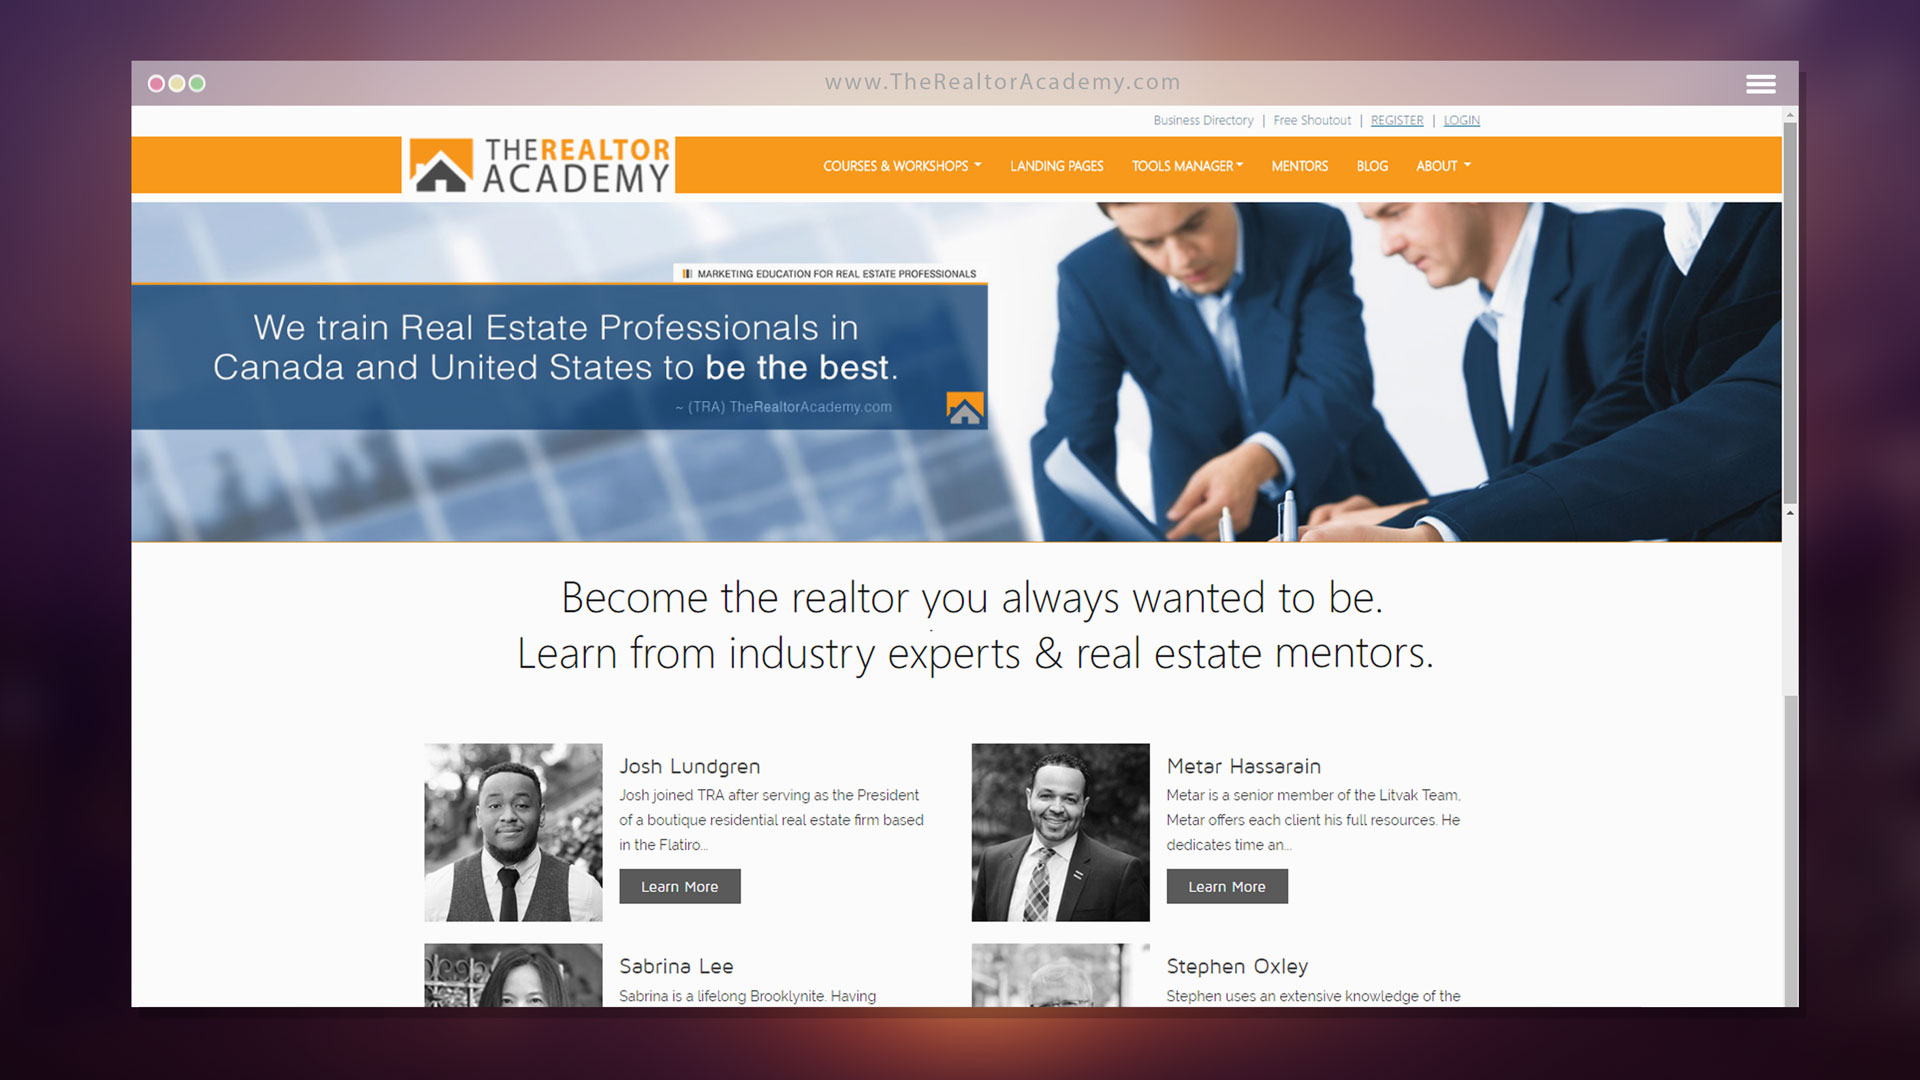 The Realtor Academy - Resource / Directory / Education  CMS / CRM for Real Estate Professionals - Powered by Web Development Company The Logic Box